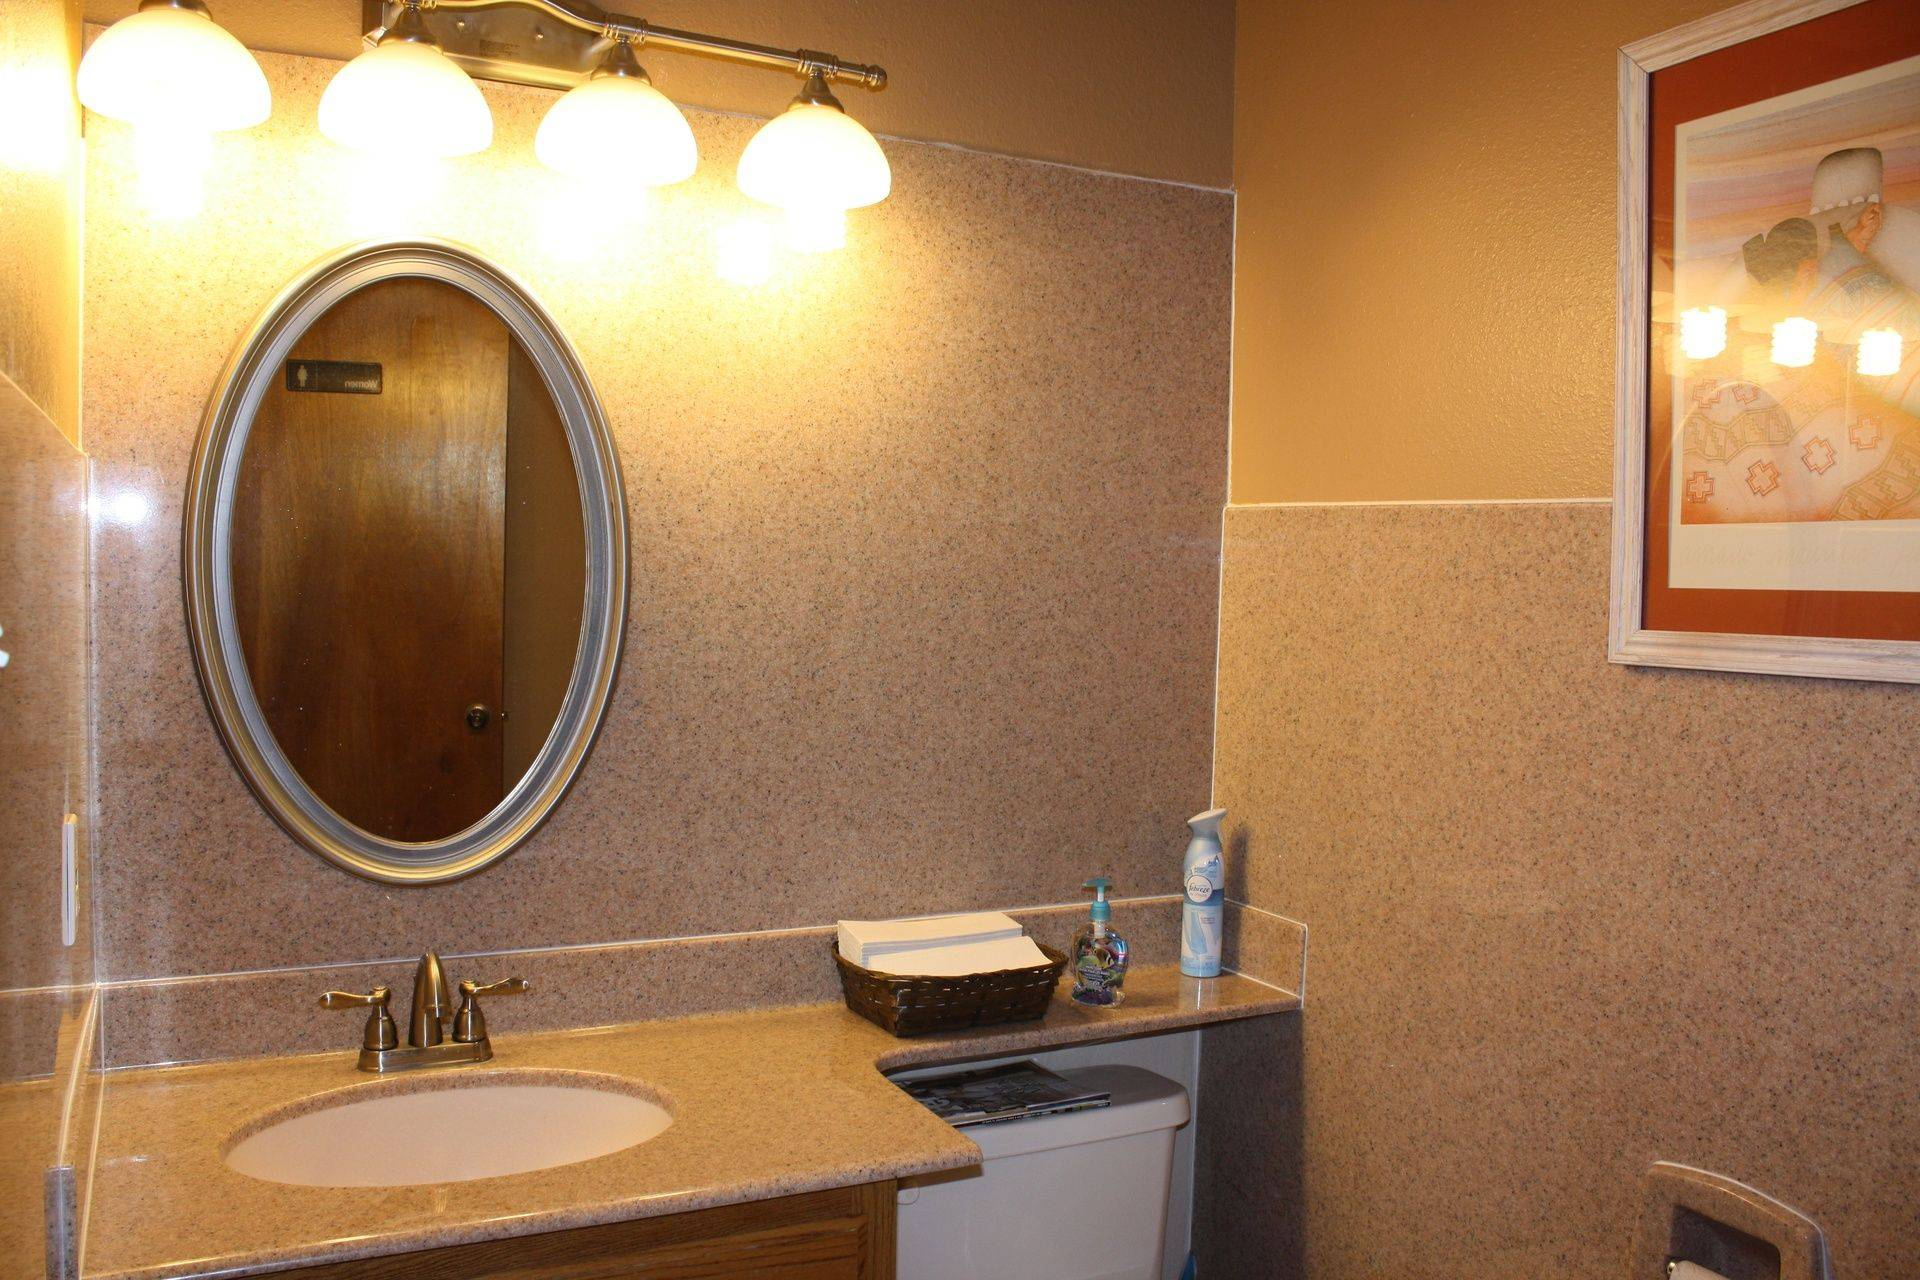 GraniteBathroom Sinks & Walls